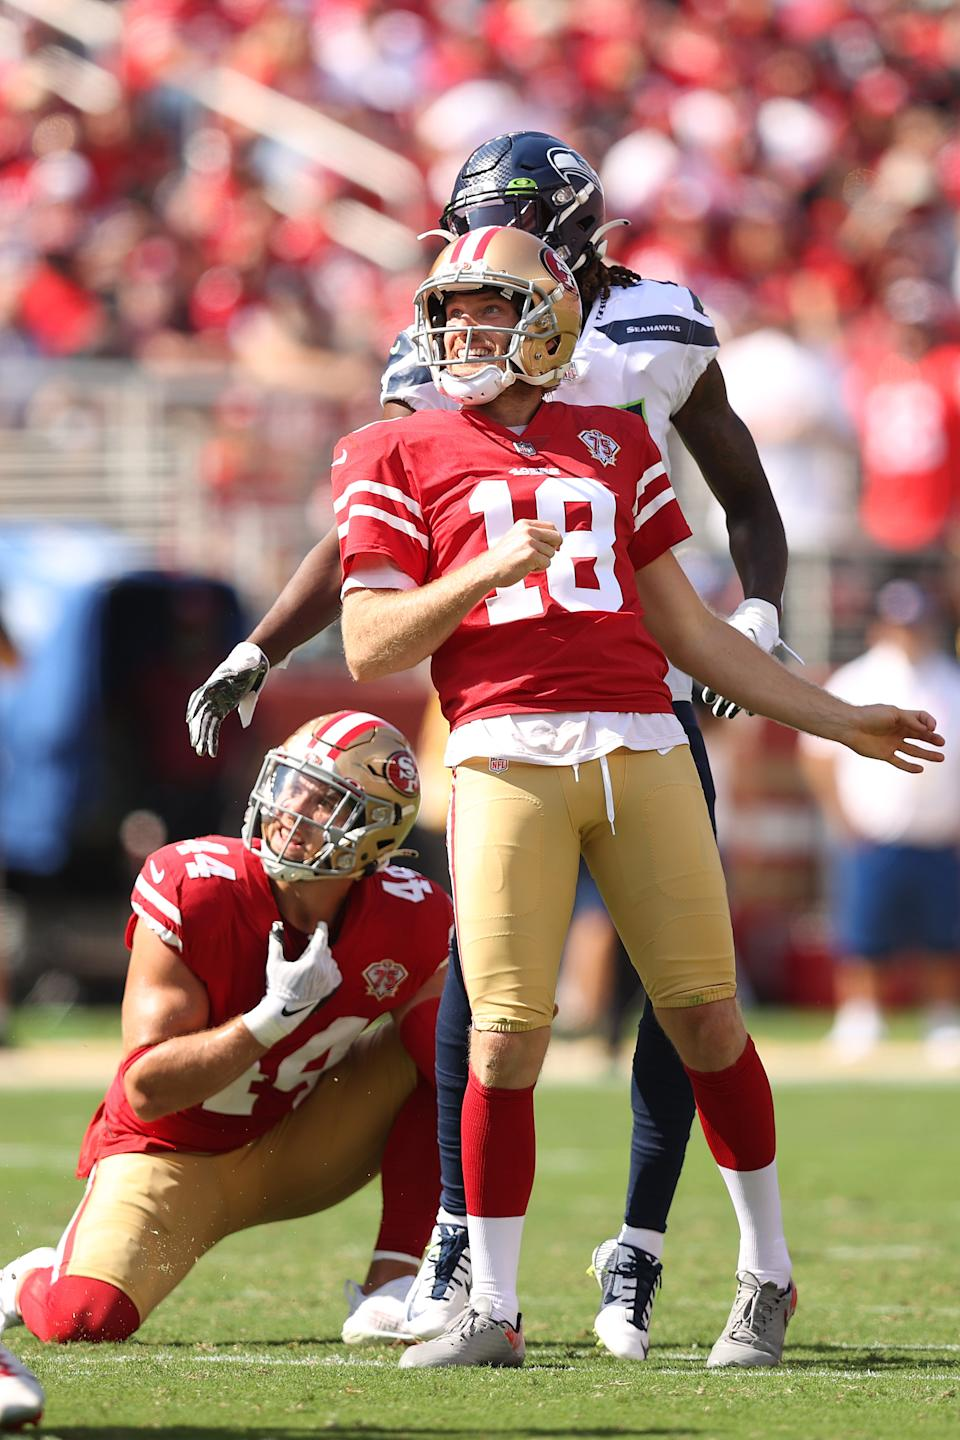 Mitch Wishnowsky (pictured) misses a field goal attempt during the second quarter against the Seattle Seahawks at Levi's Stadium on October 03, 2021 in Santa Clara, California.